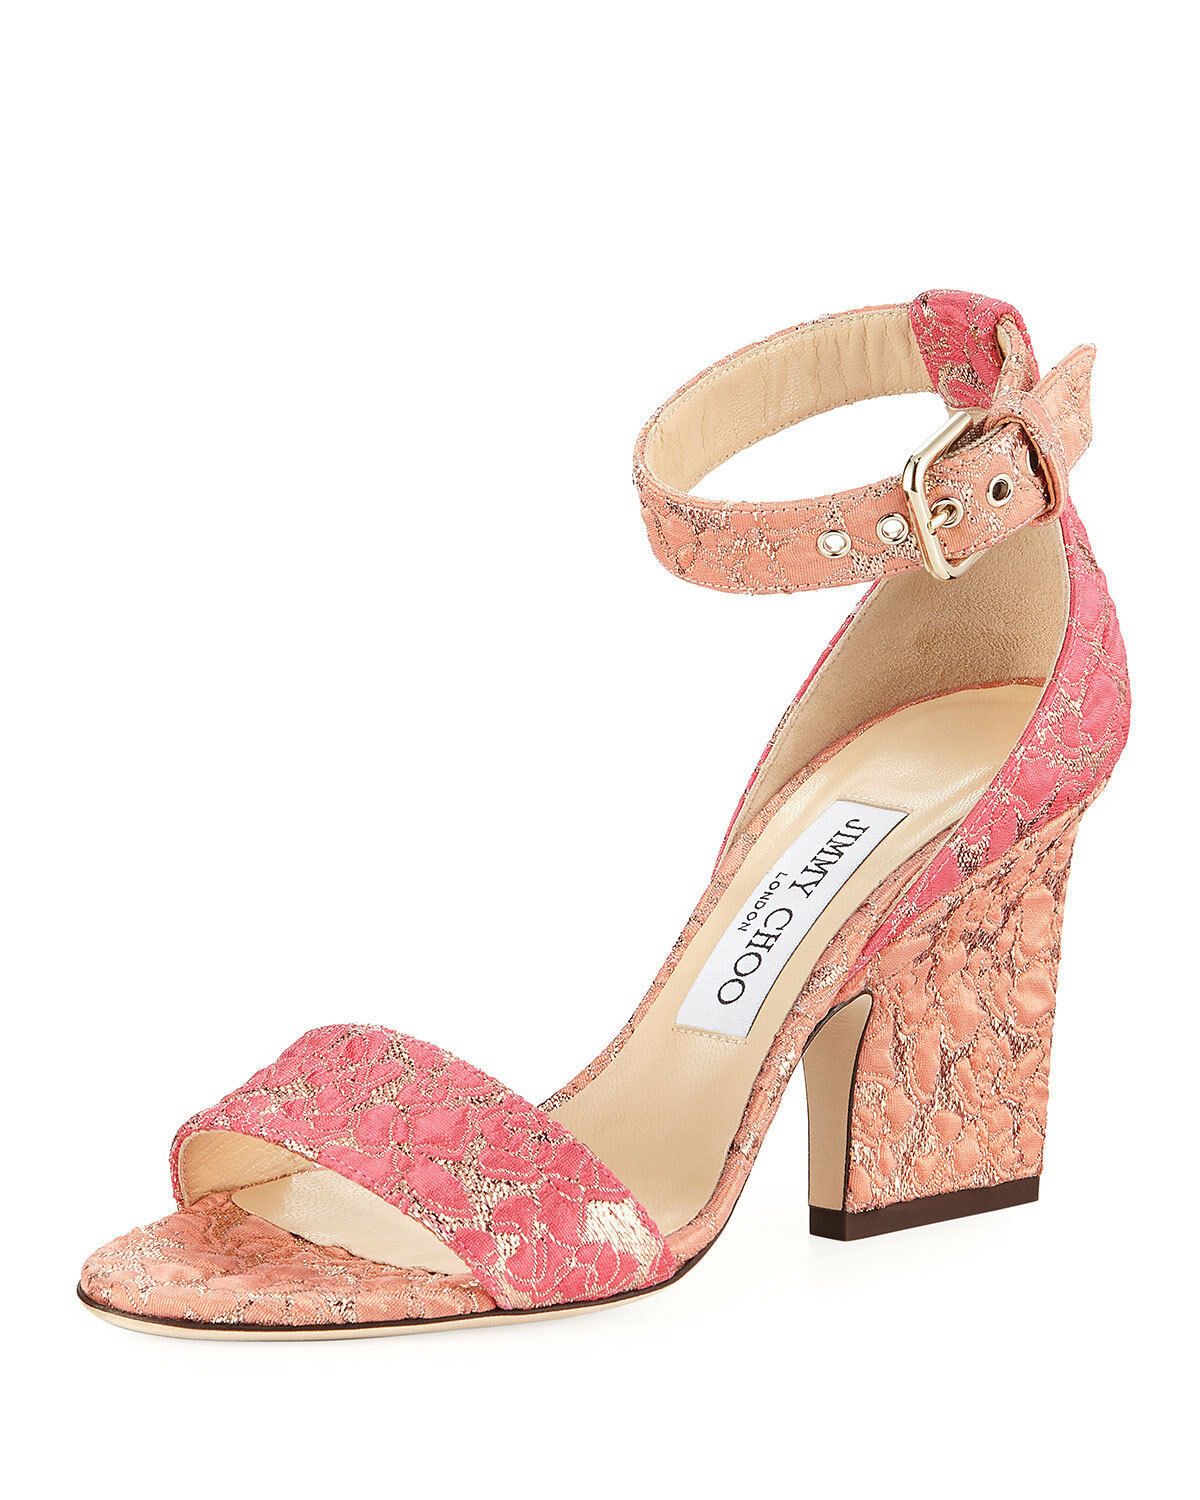 Primary image for Jimmy Choo Edina Floral Sandals, Flamingo Calypso MSRP: $695.00 Size 39